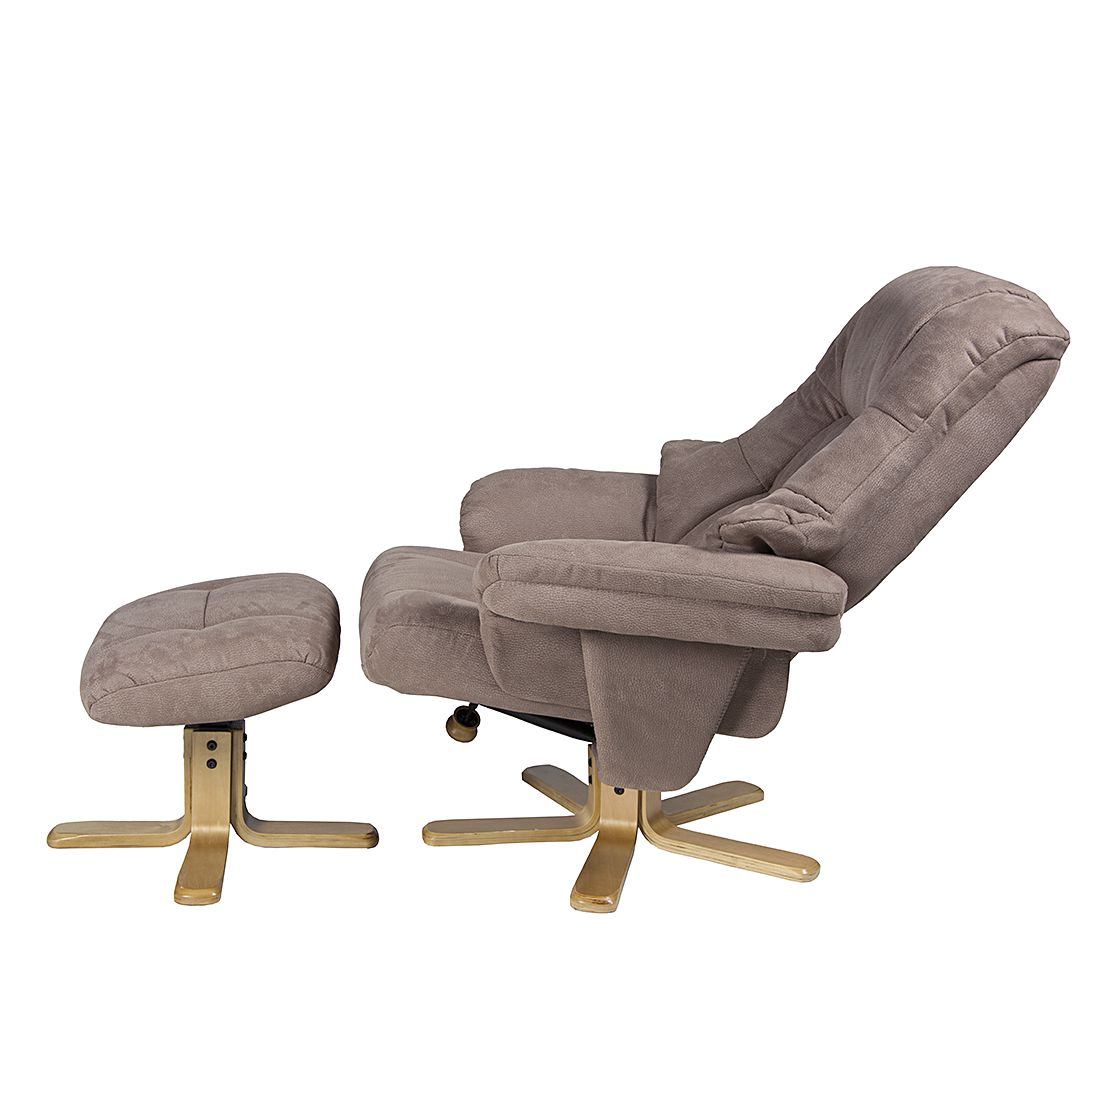 Duo Collection Tv Sessel Duo Collection Relaxsessel Lacanau Tv Sessel Fernsehsessel